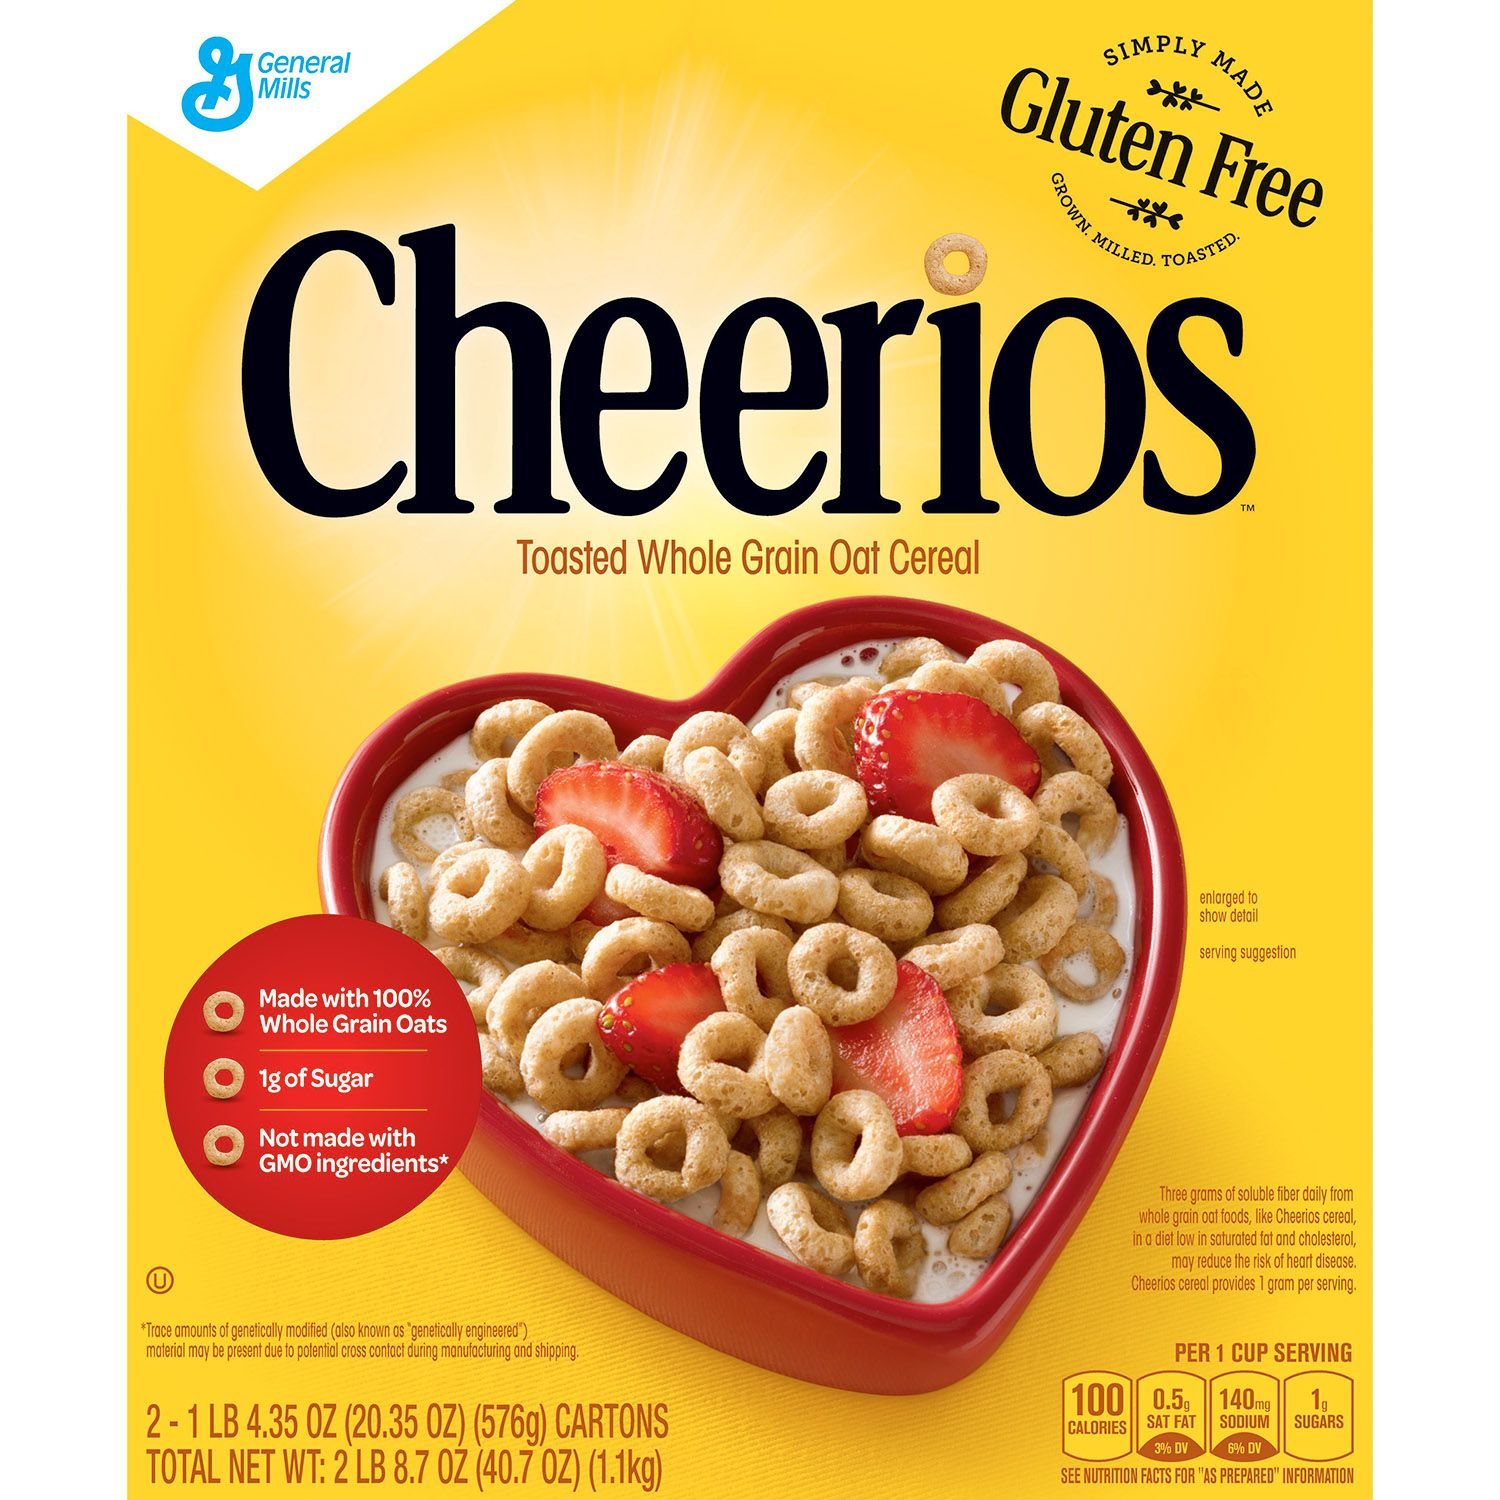 Five Star Home Delivery We Are More Than Just A Convenience Quaker Instant Oatmeal Jar 1 Carton 12 Pcs P Cheerios Toasted Whole Grain Cereal 2035 Oz Box 2 Pk